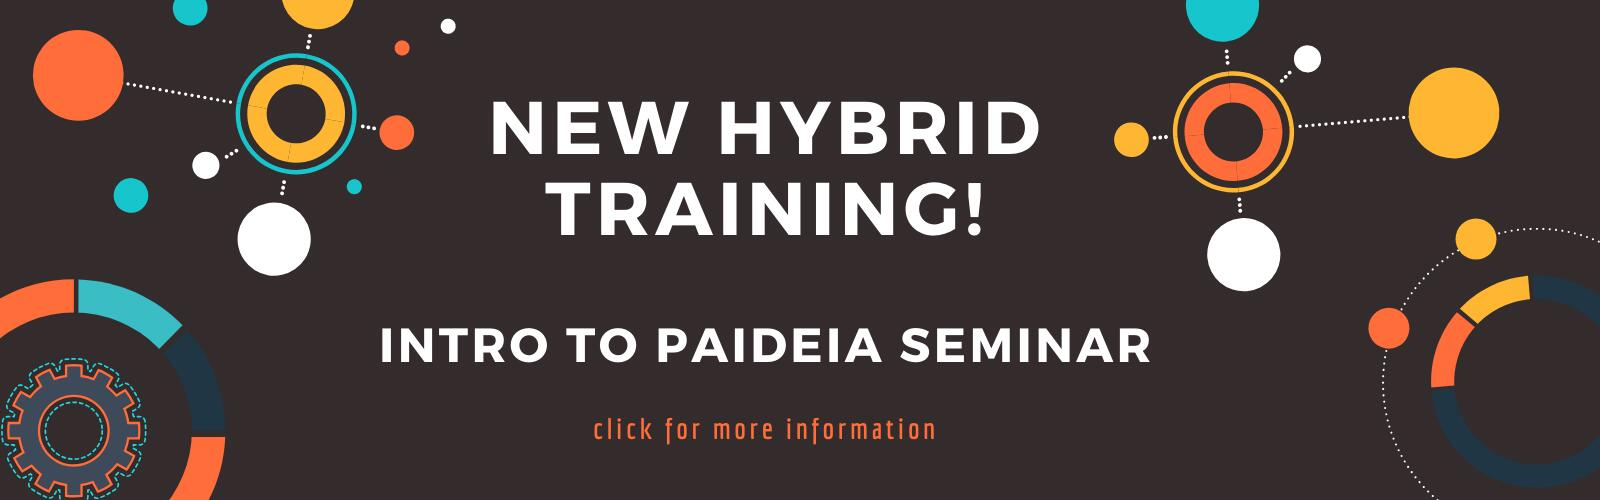 Abstract graphic to link to new hybrid training course